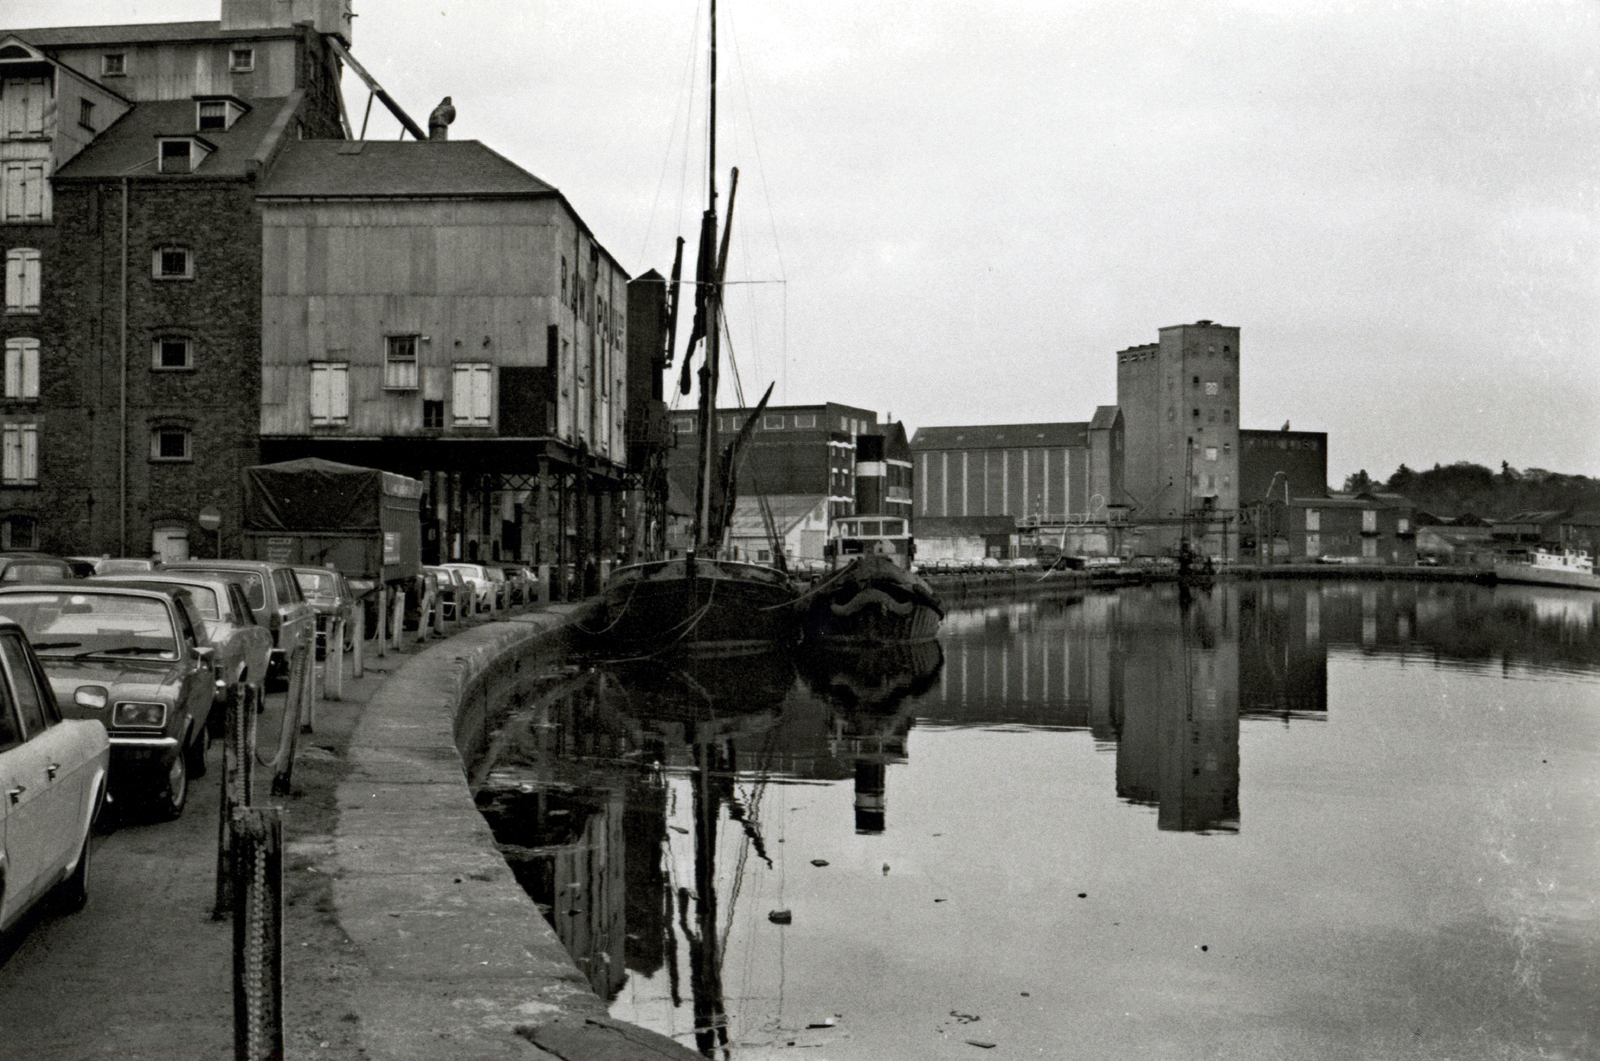 Black & white photo of dock buildings and boat reflected in water